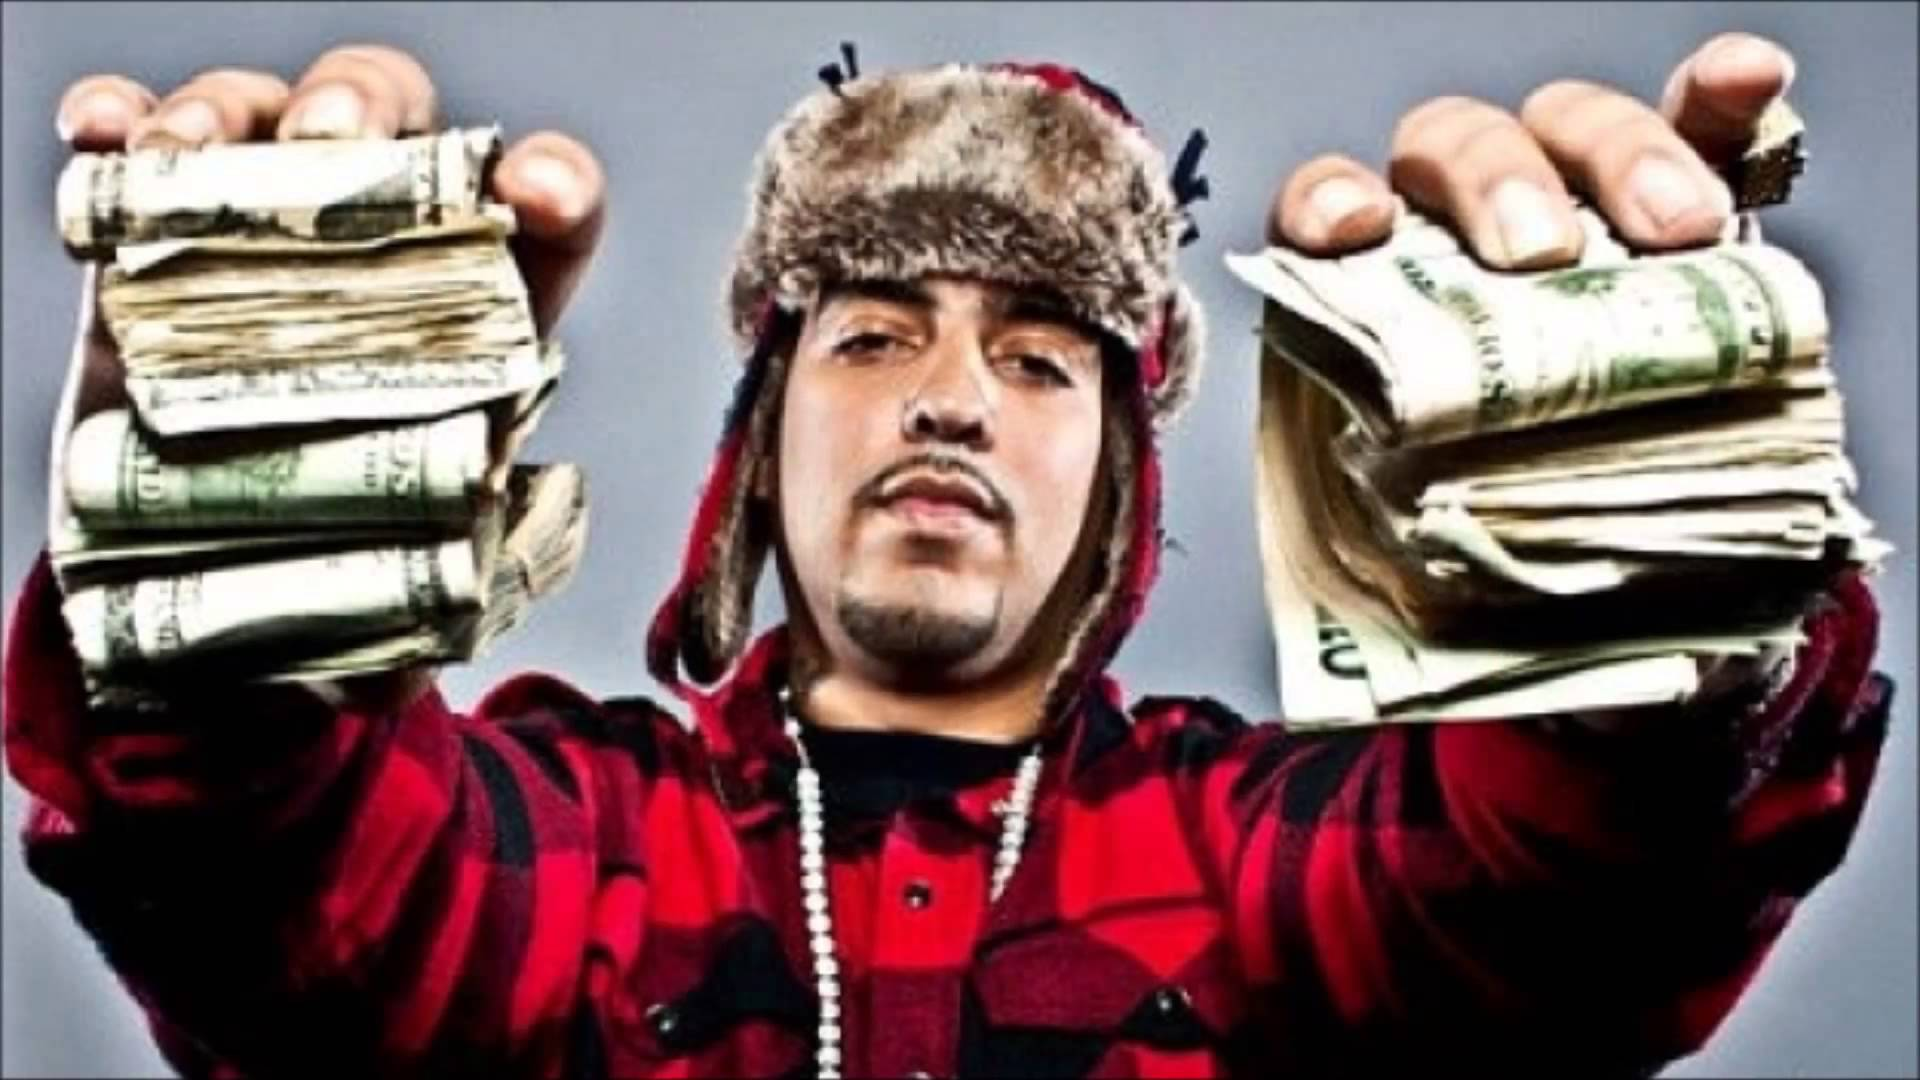 Mally Mall feat. French Montana & Trae Tha Truth – Mo' Money